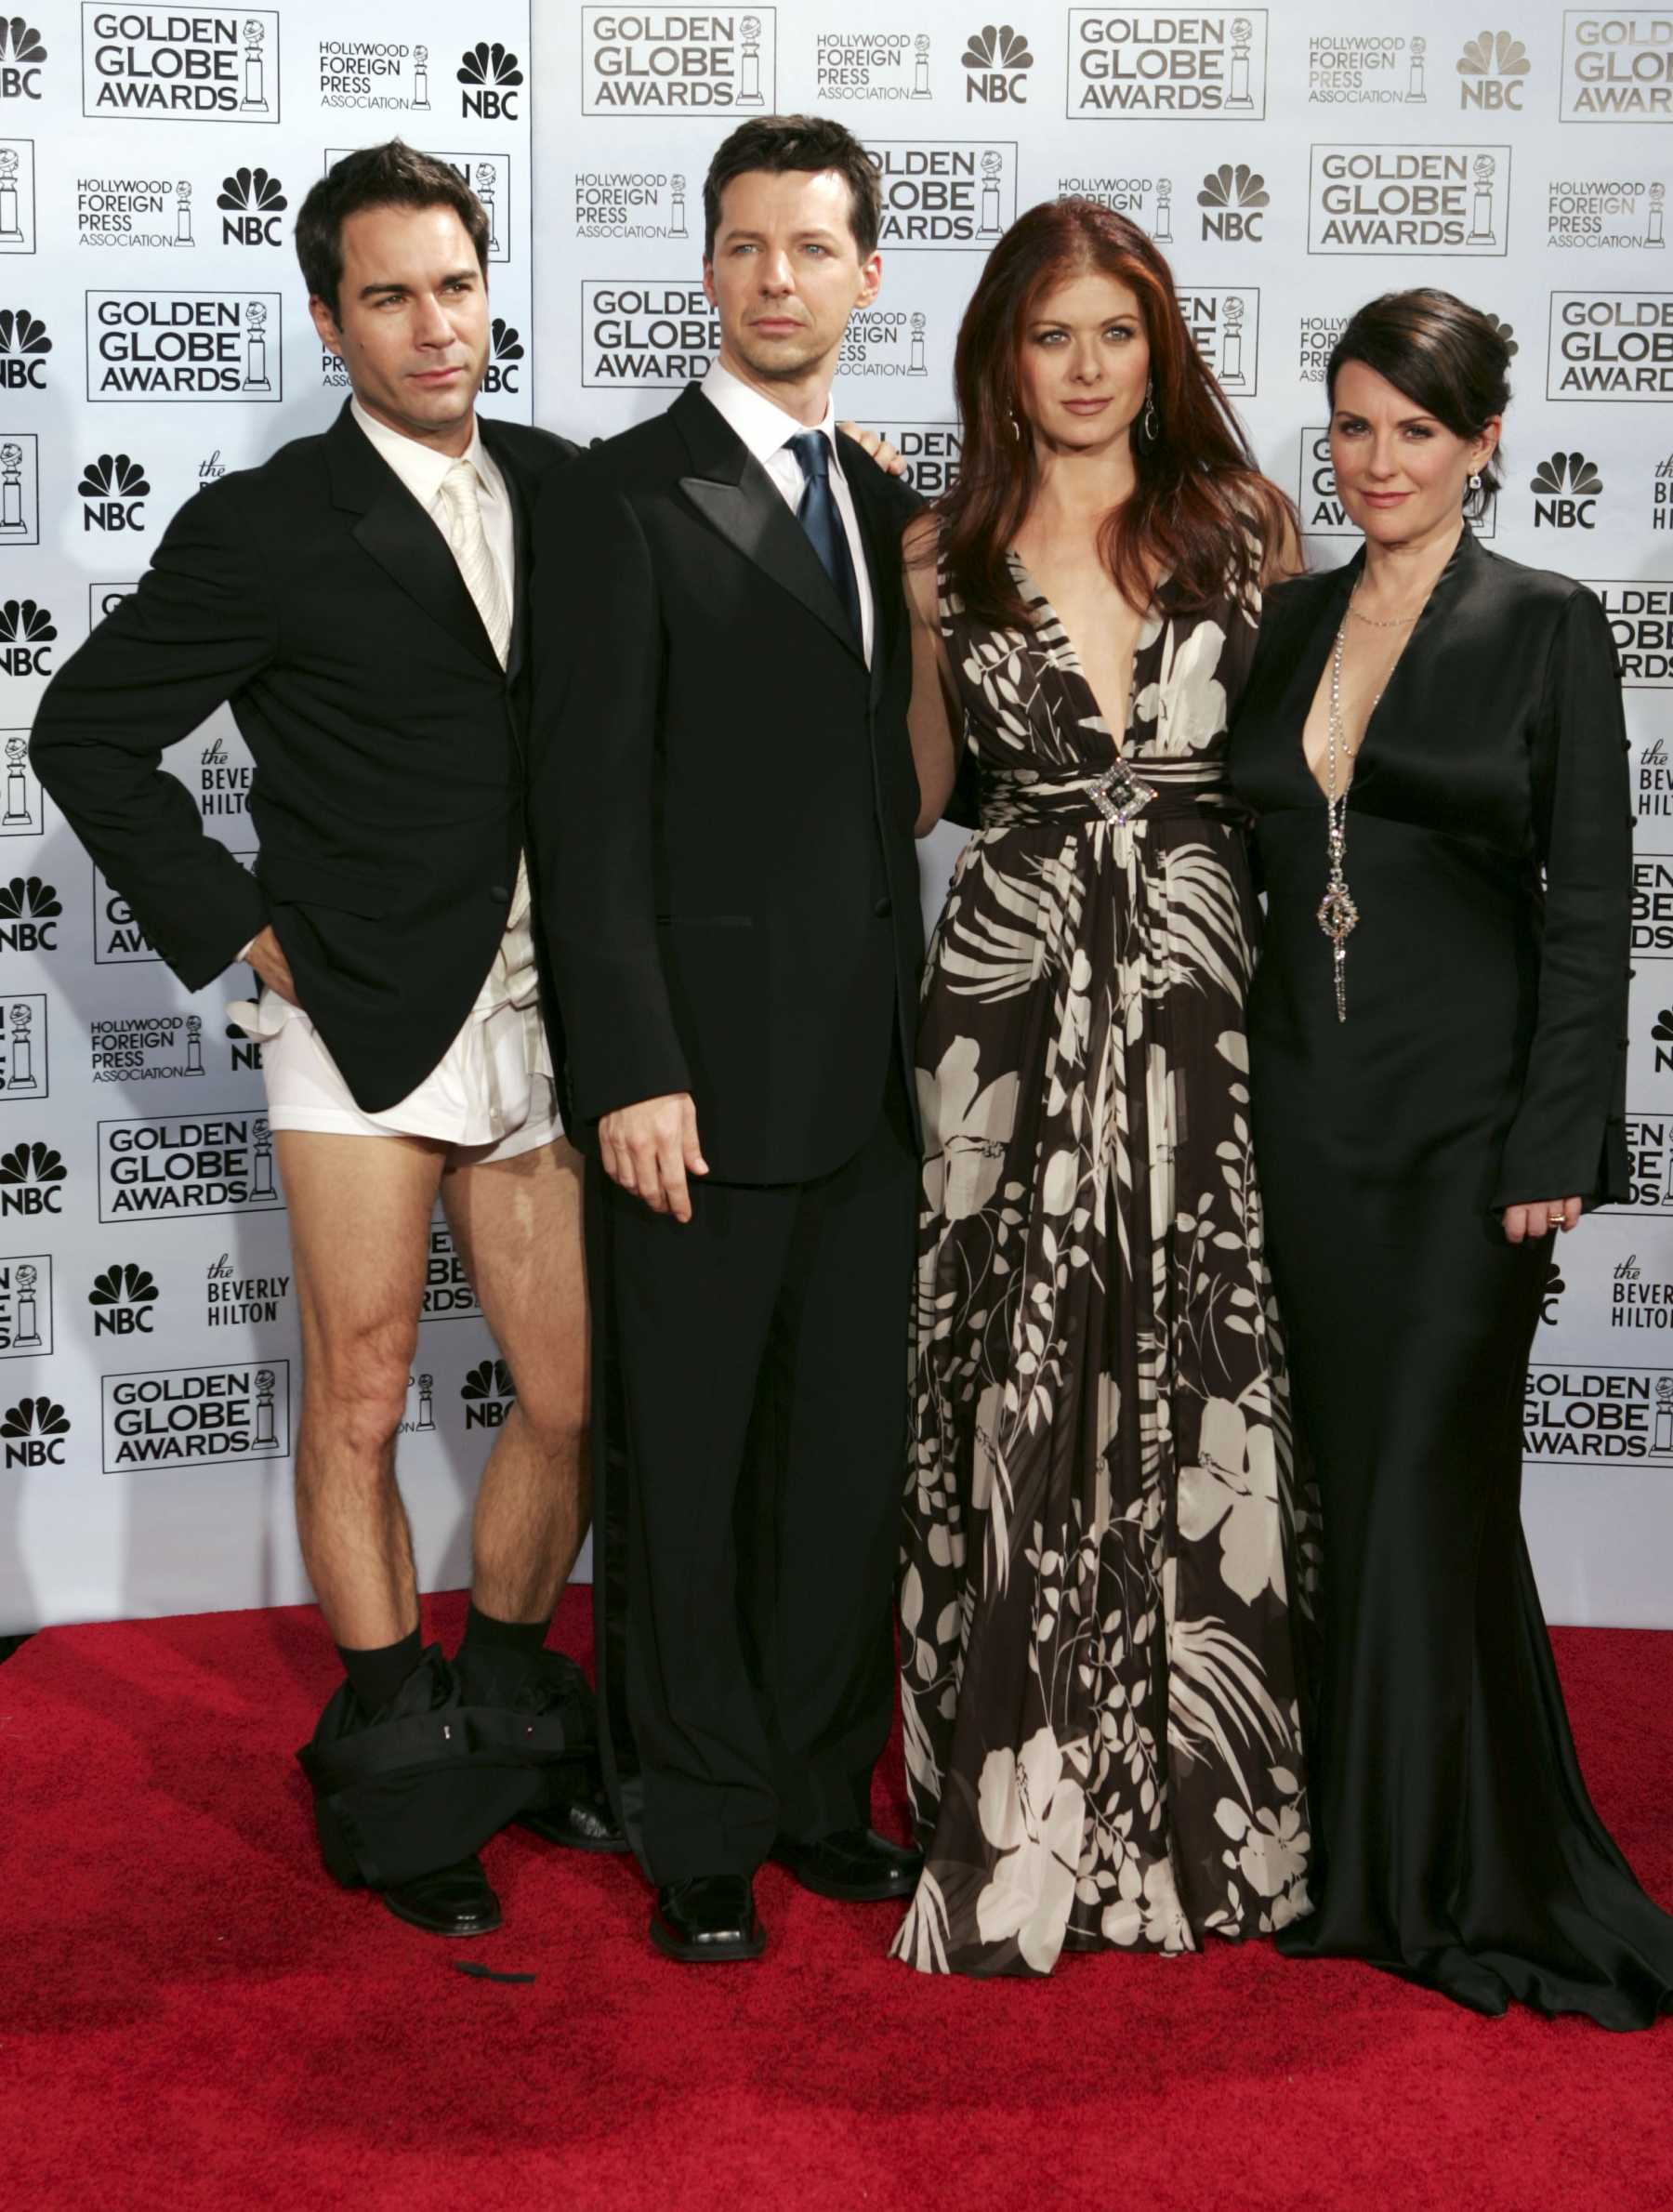 Early Focus Groups Didn't Know 'Will & Grace' Lead Was Playing Gay, Shock Ensues